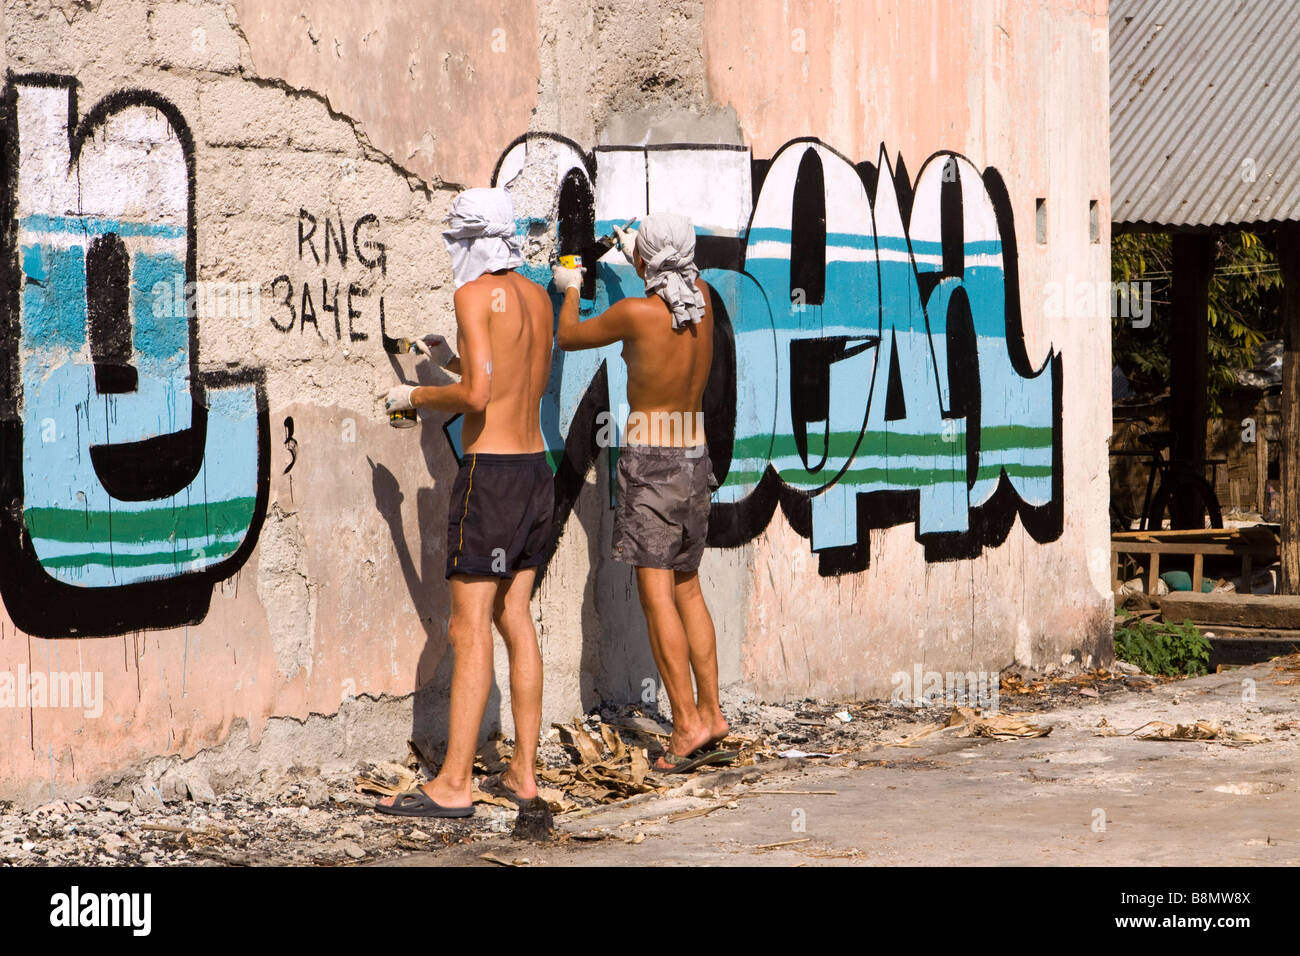 India Andaman and Nicobar Havelock island number 3 village bazaar Russian traveller painting grafitti on wall - Stock Image